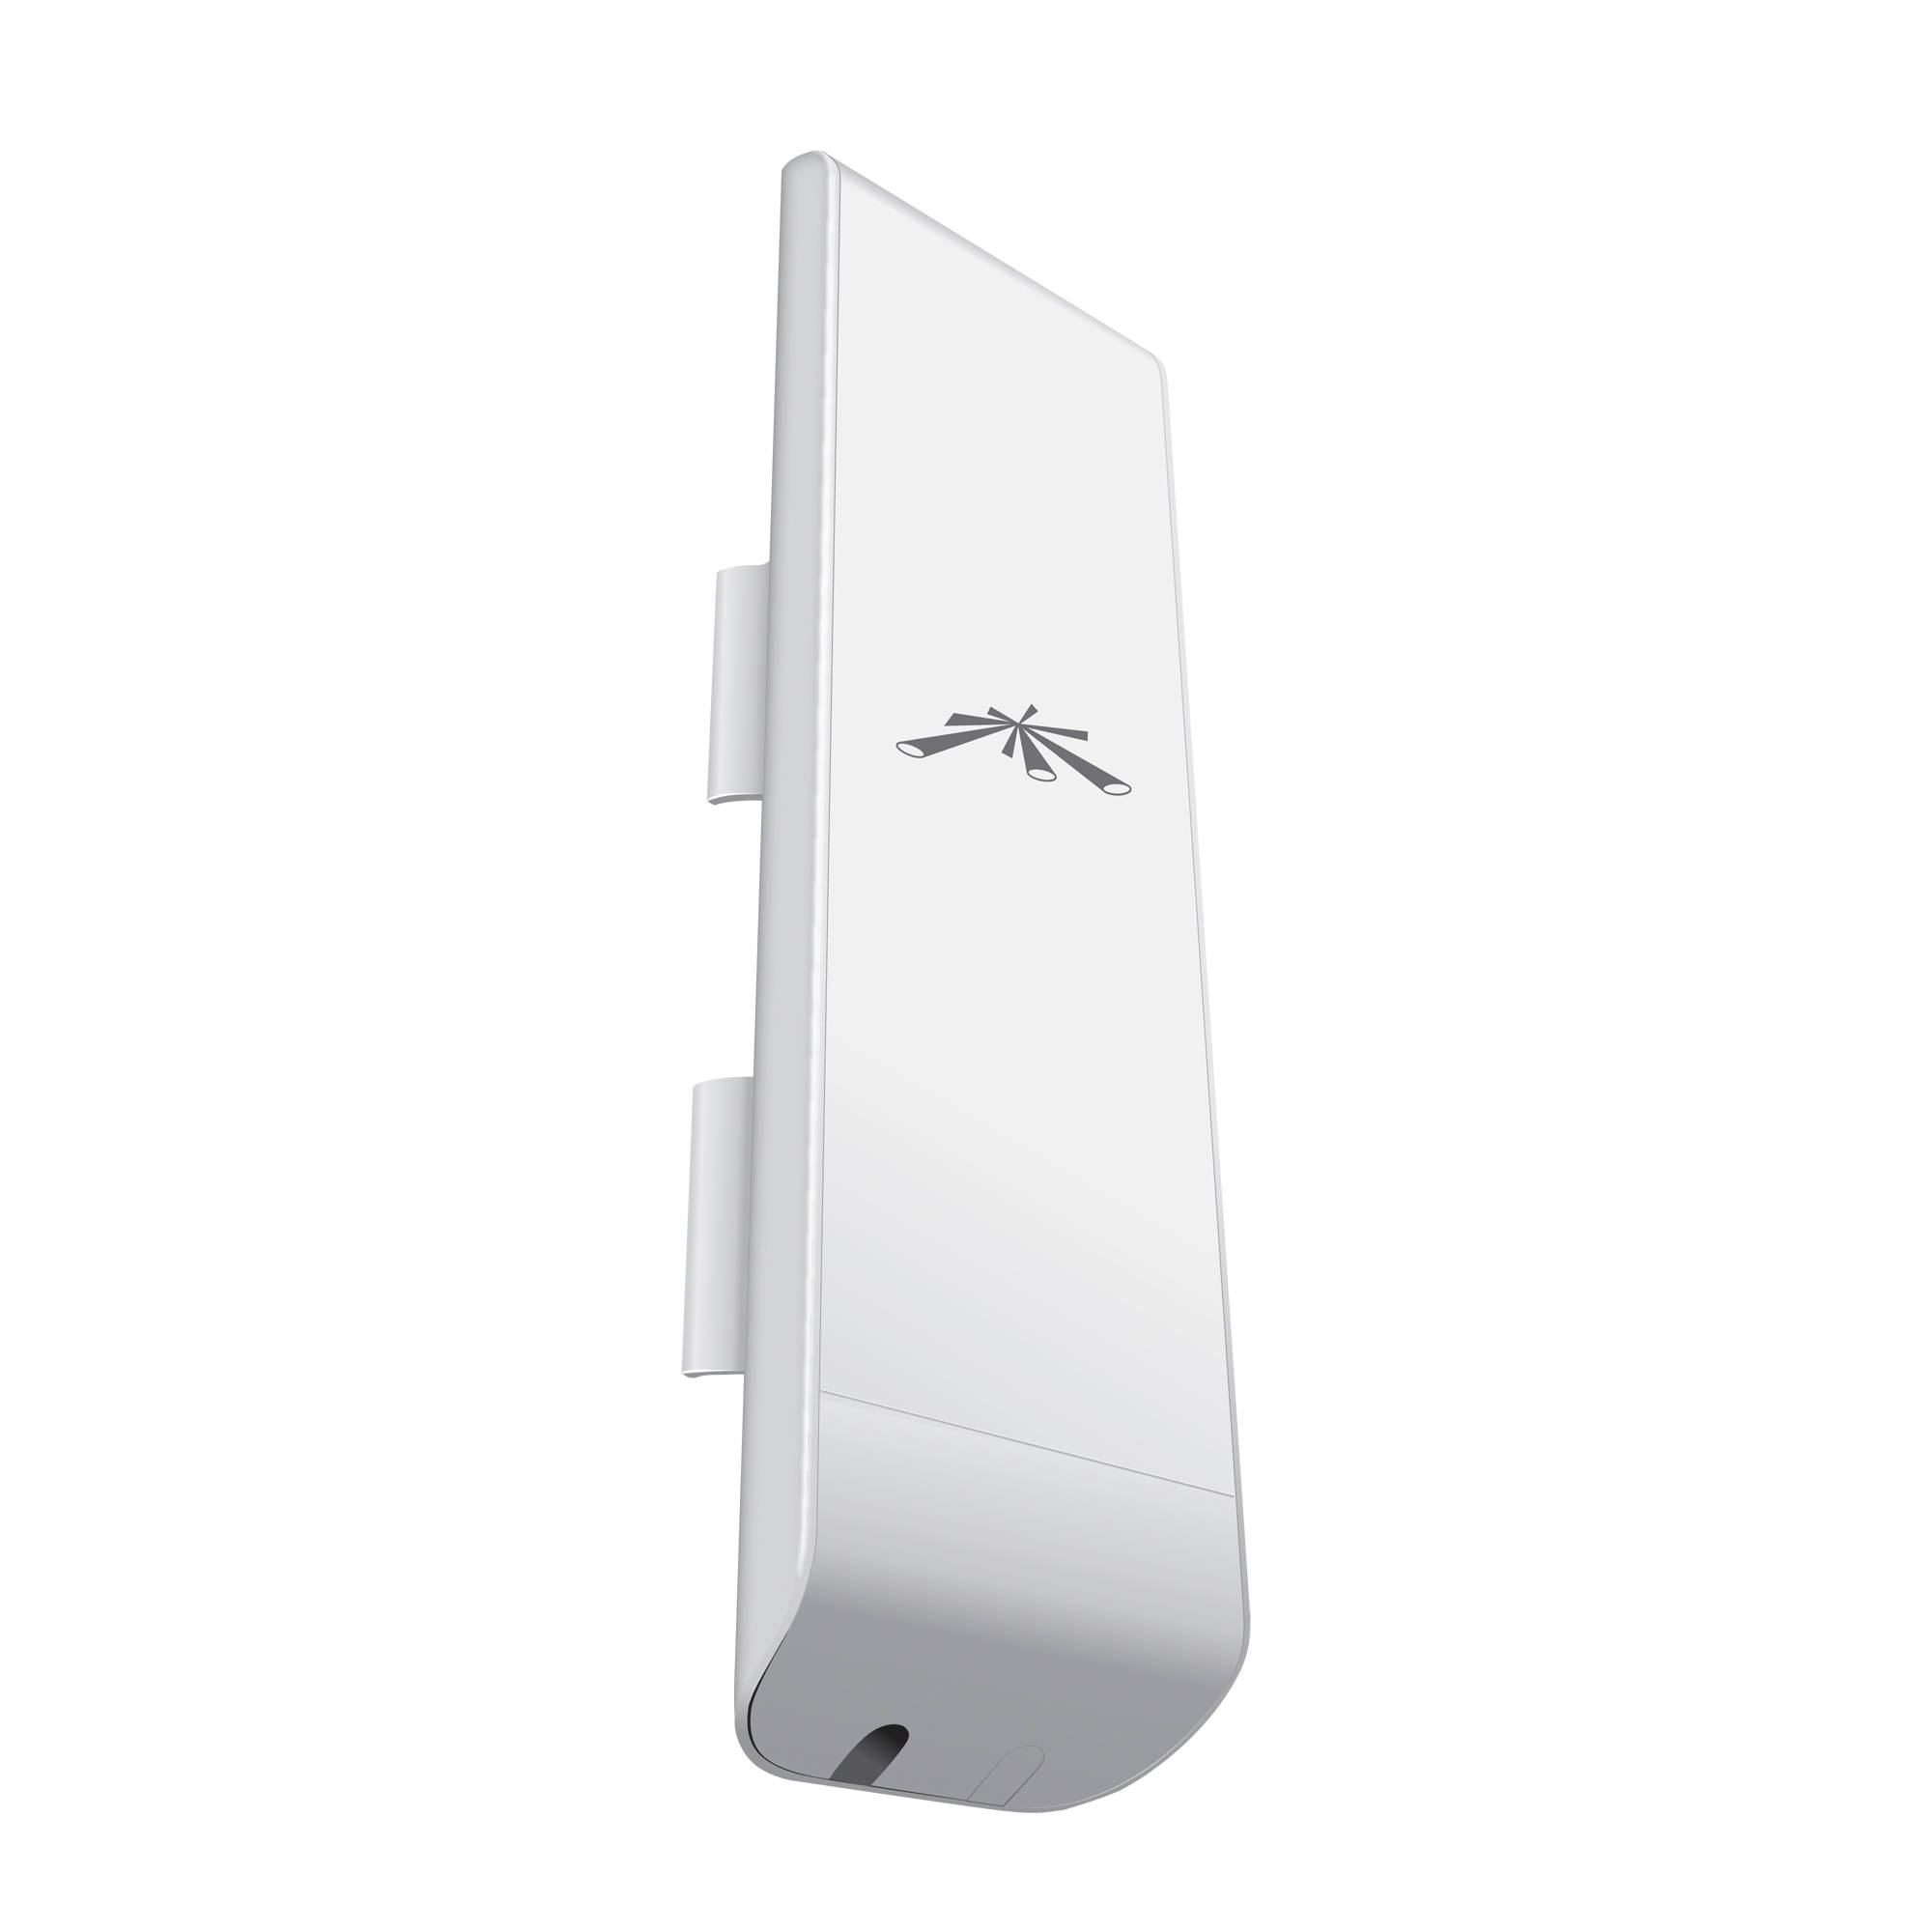 Ubiquiti Networks NanoStation5 Broadband Outdoor Wireless CPE Router